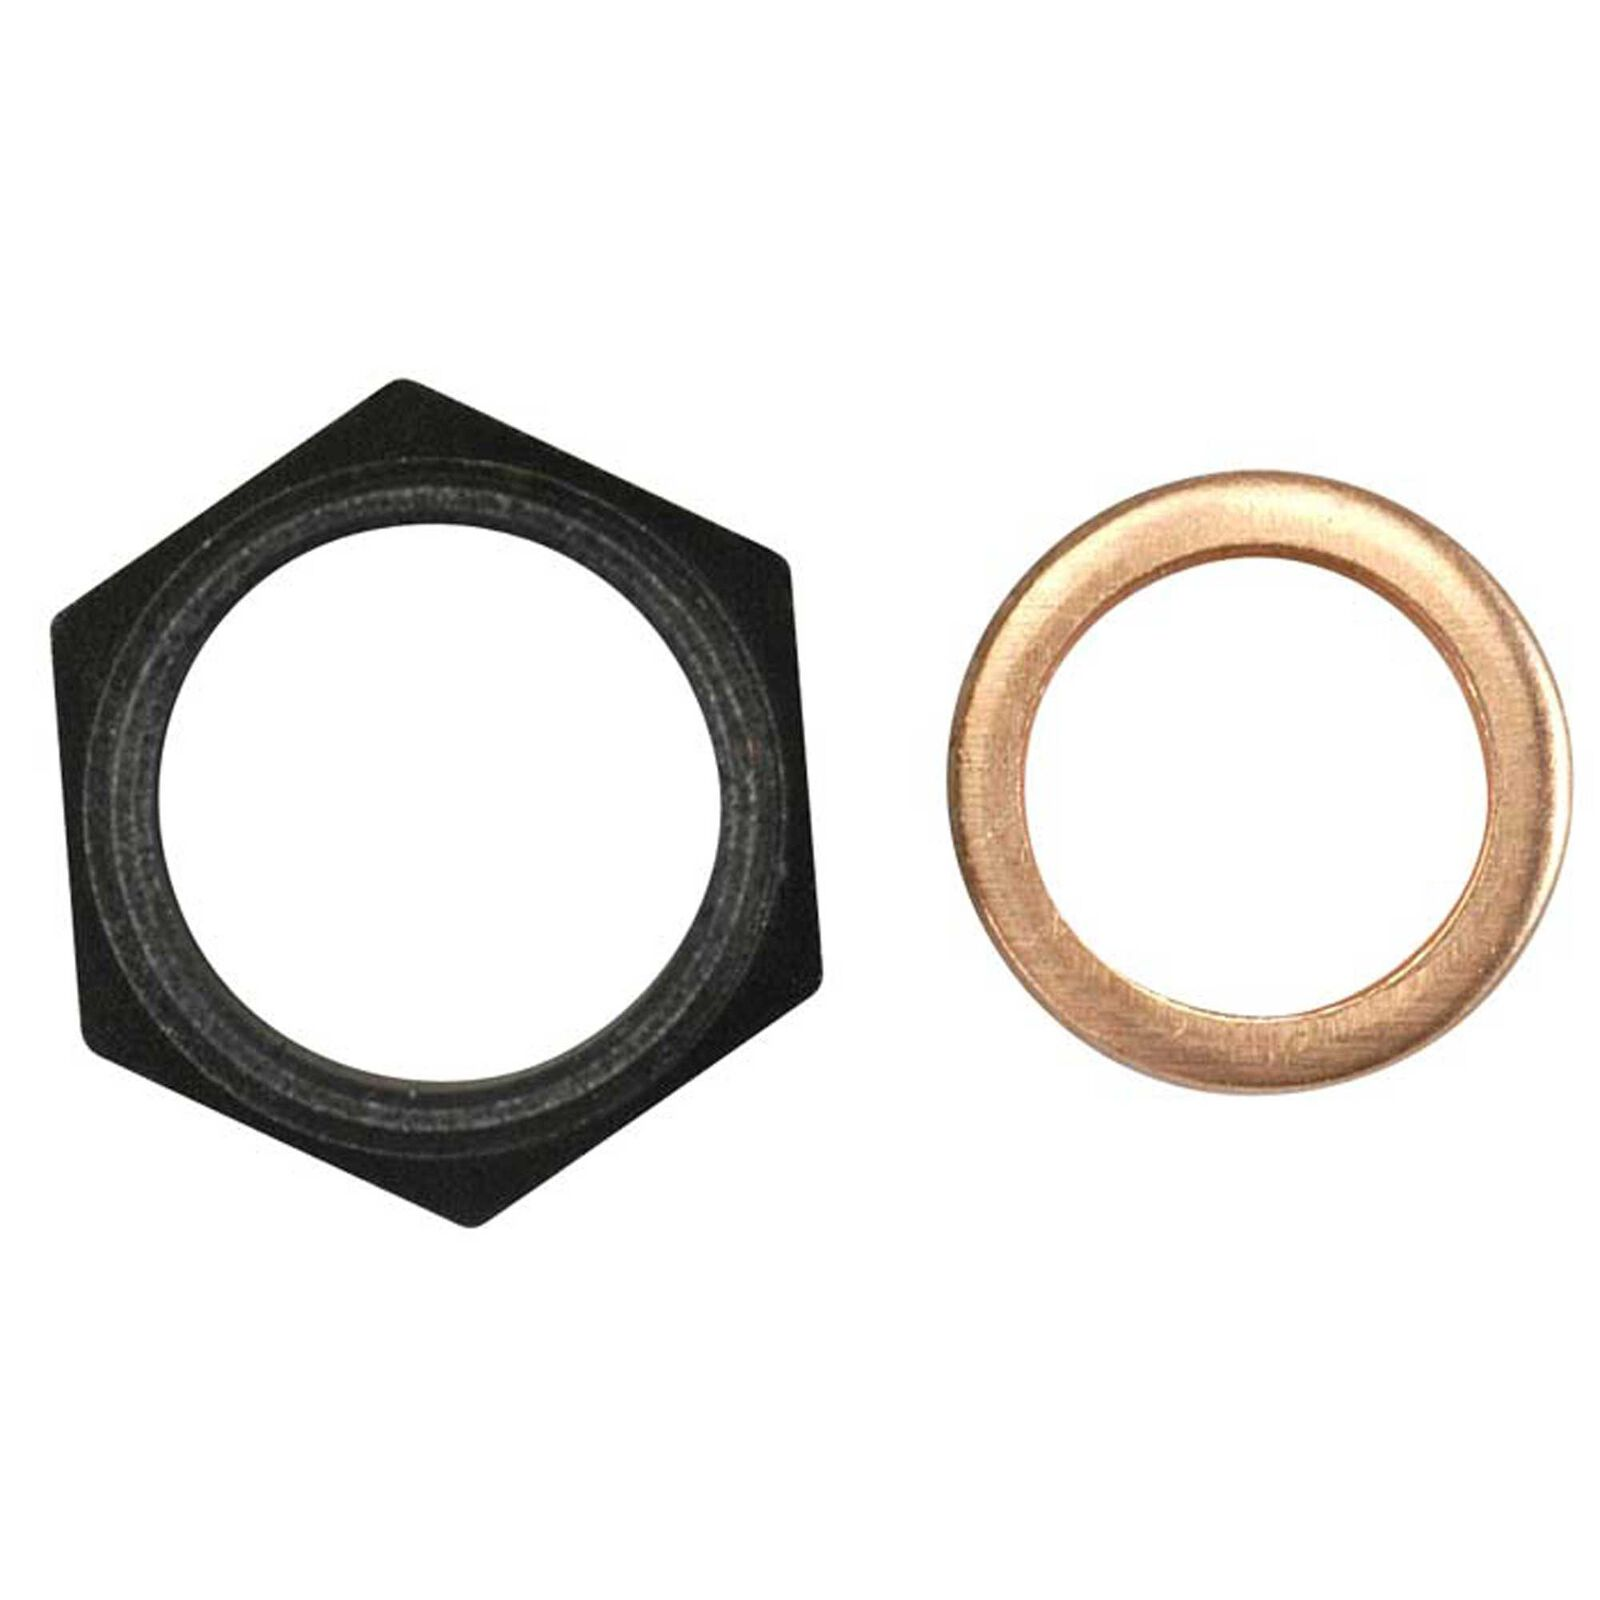 Exhaust Pipe Nut: F90-240